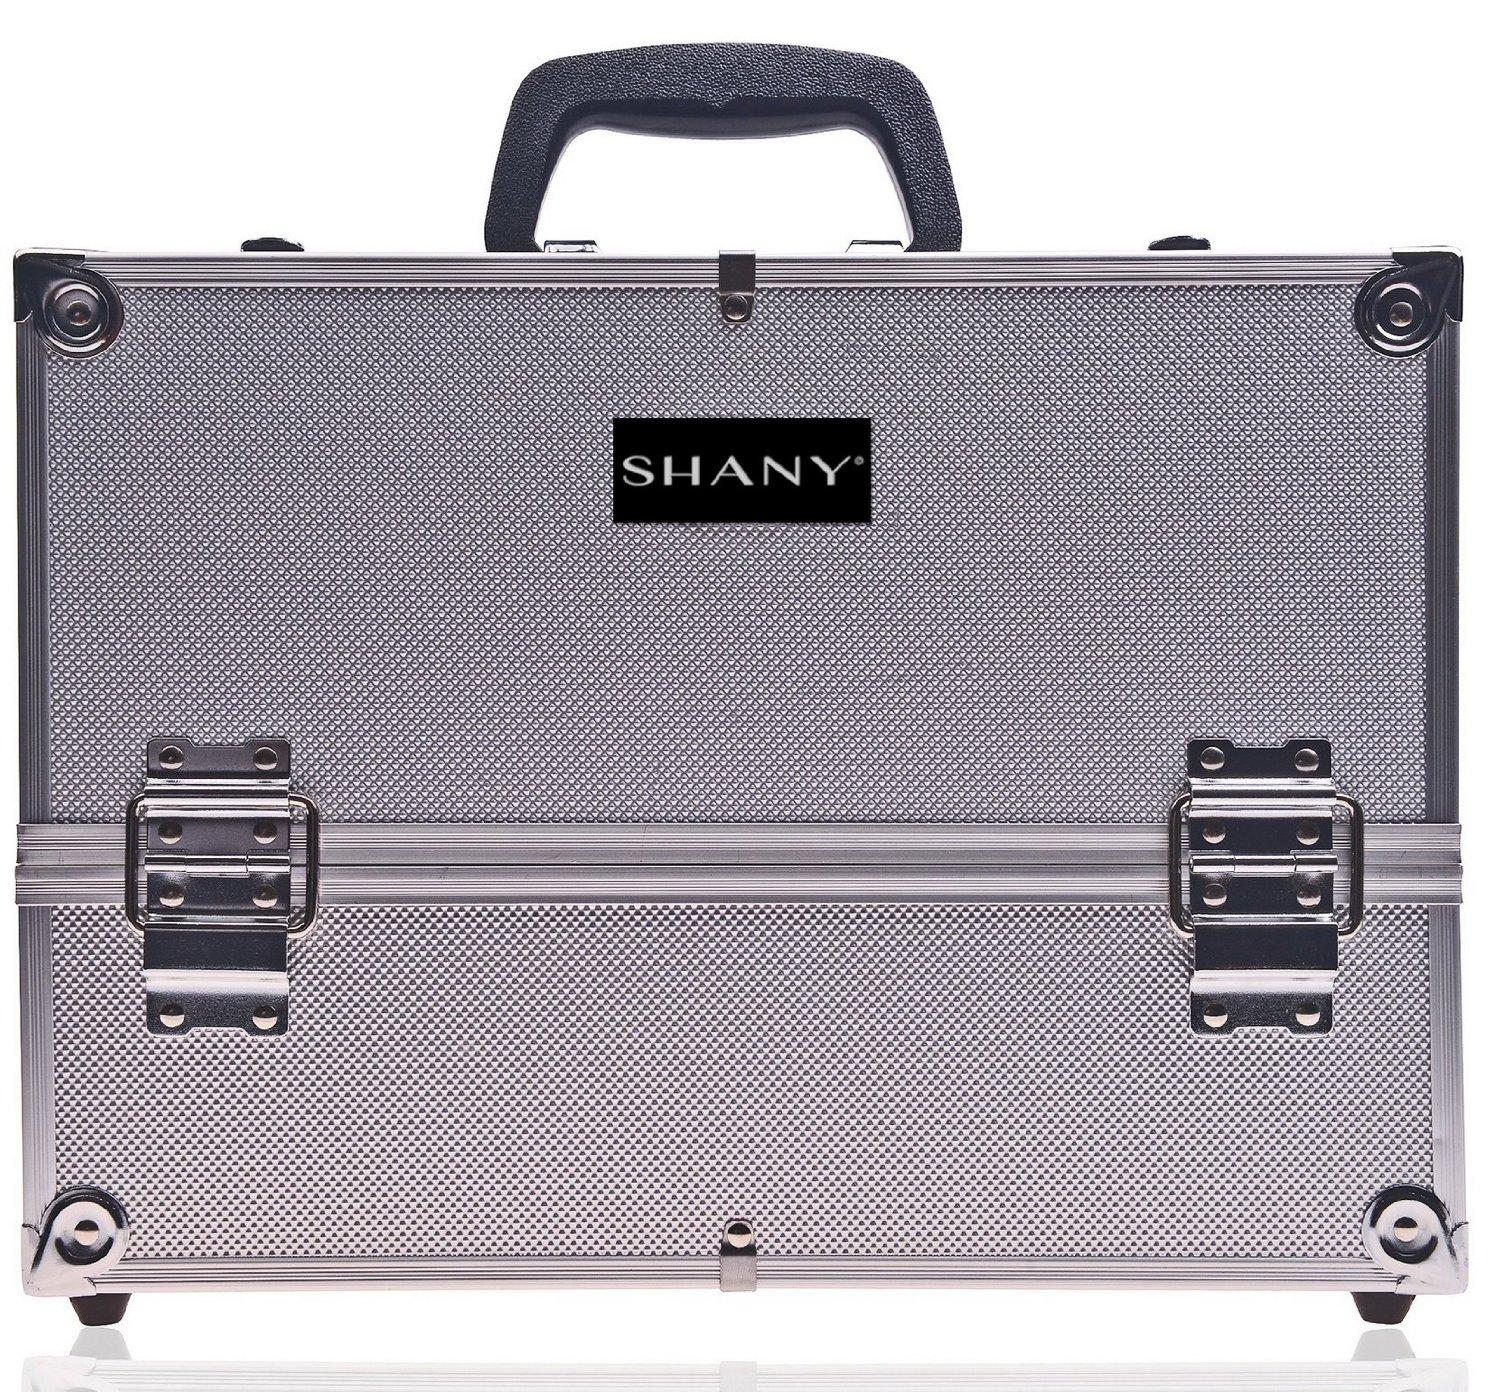 Amazon.com : SHANY Essential Pro Makeup Train Case with ...